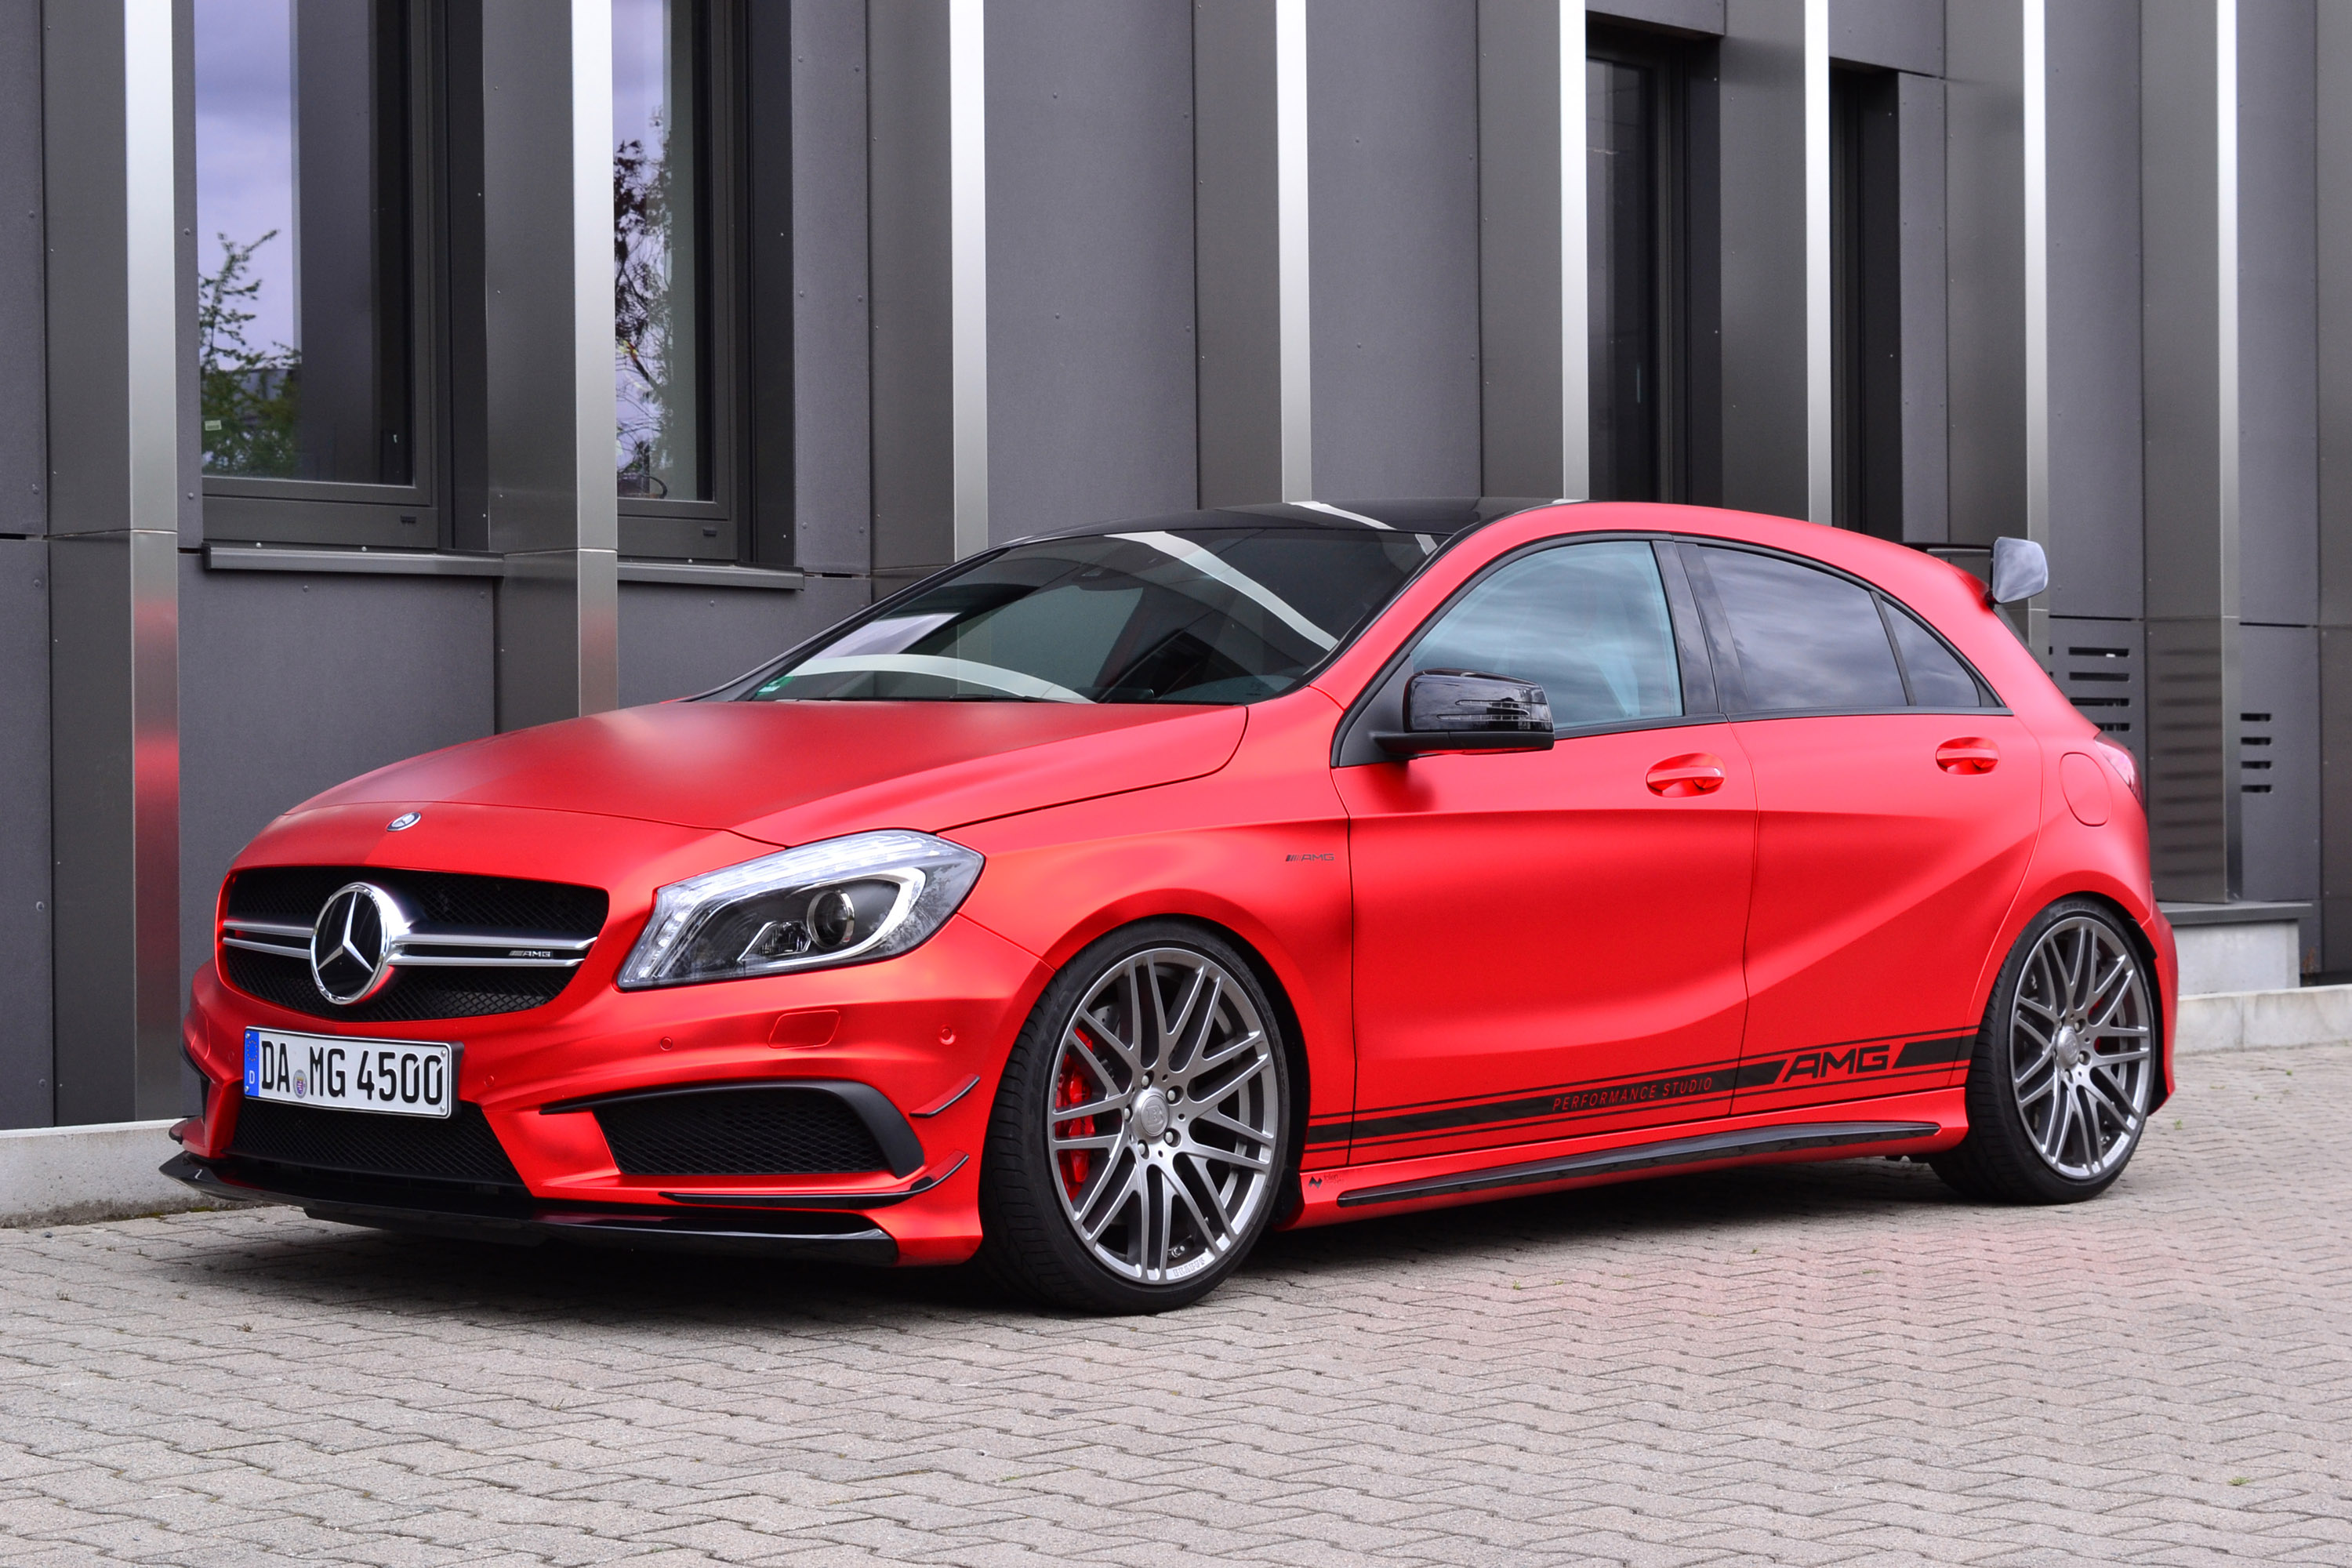 take a look at this mercedes benz a45 amg by folien. Black Bedroom Furniture Sets. Home Design Ideas